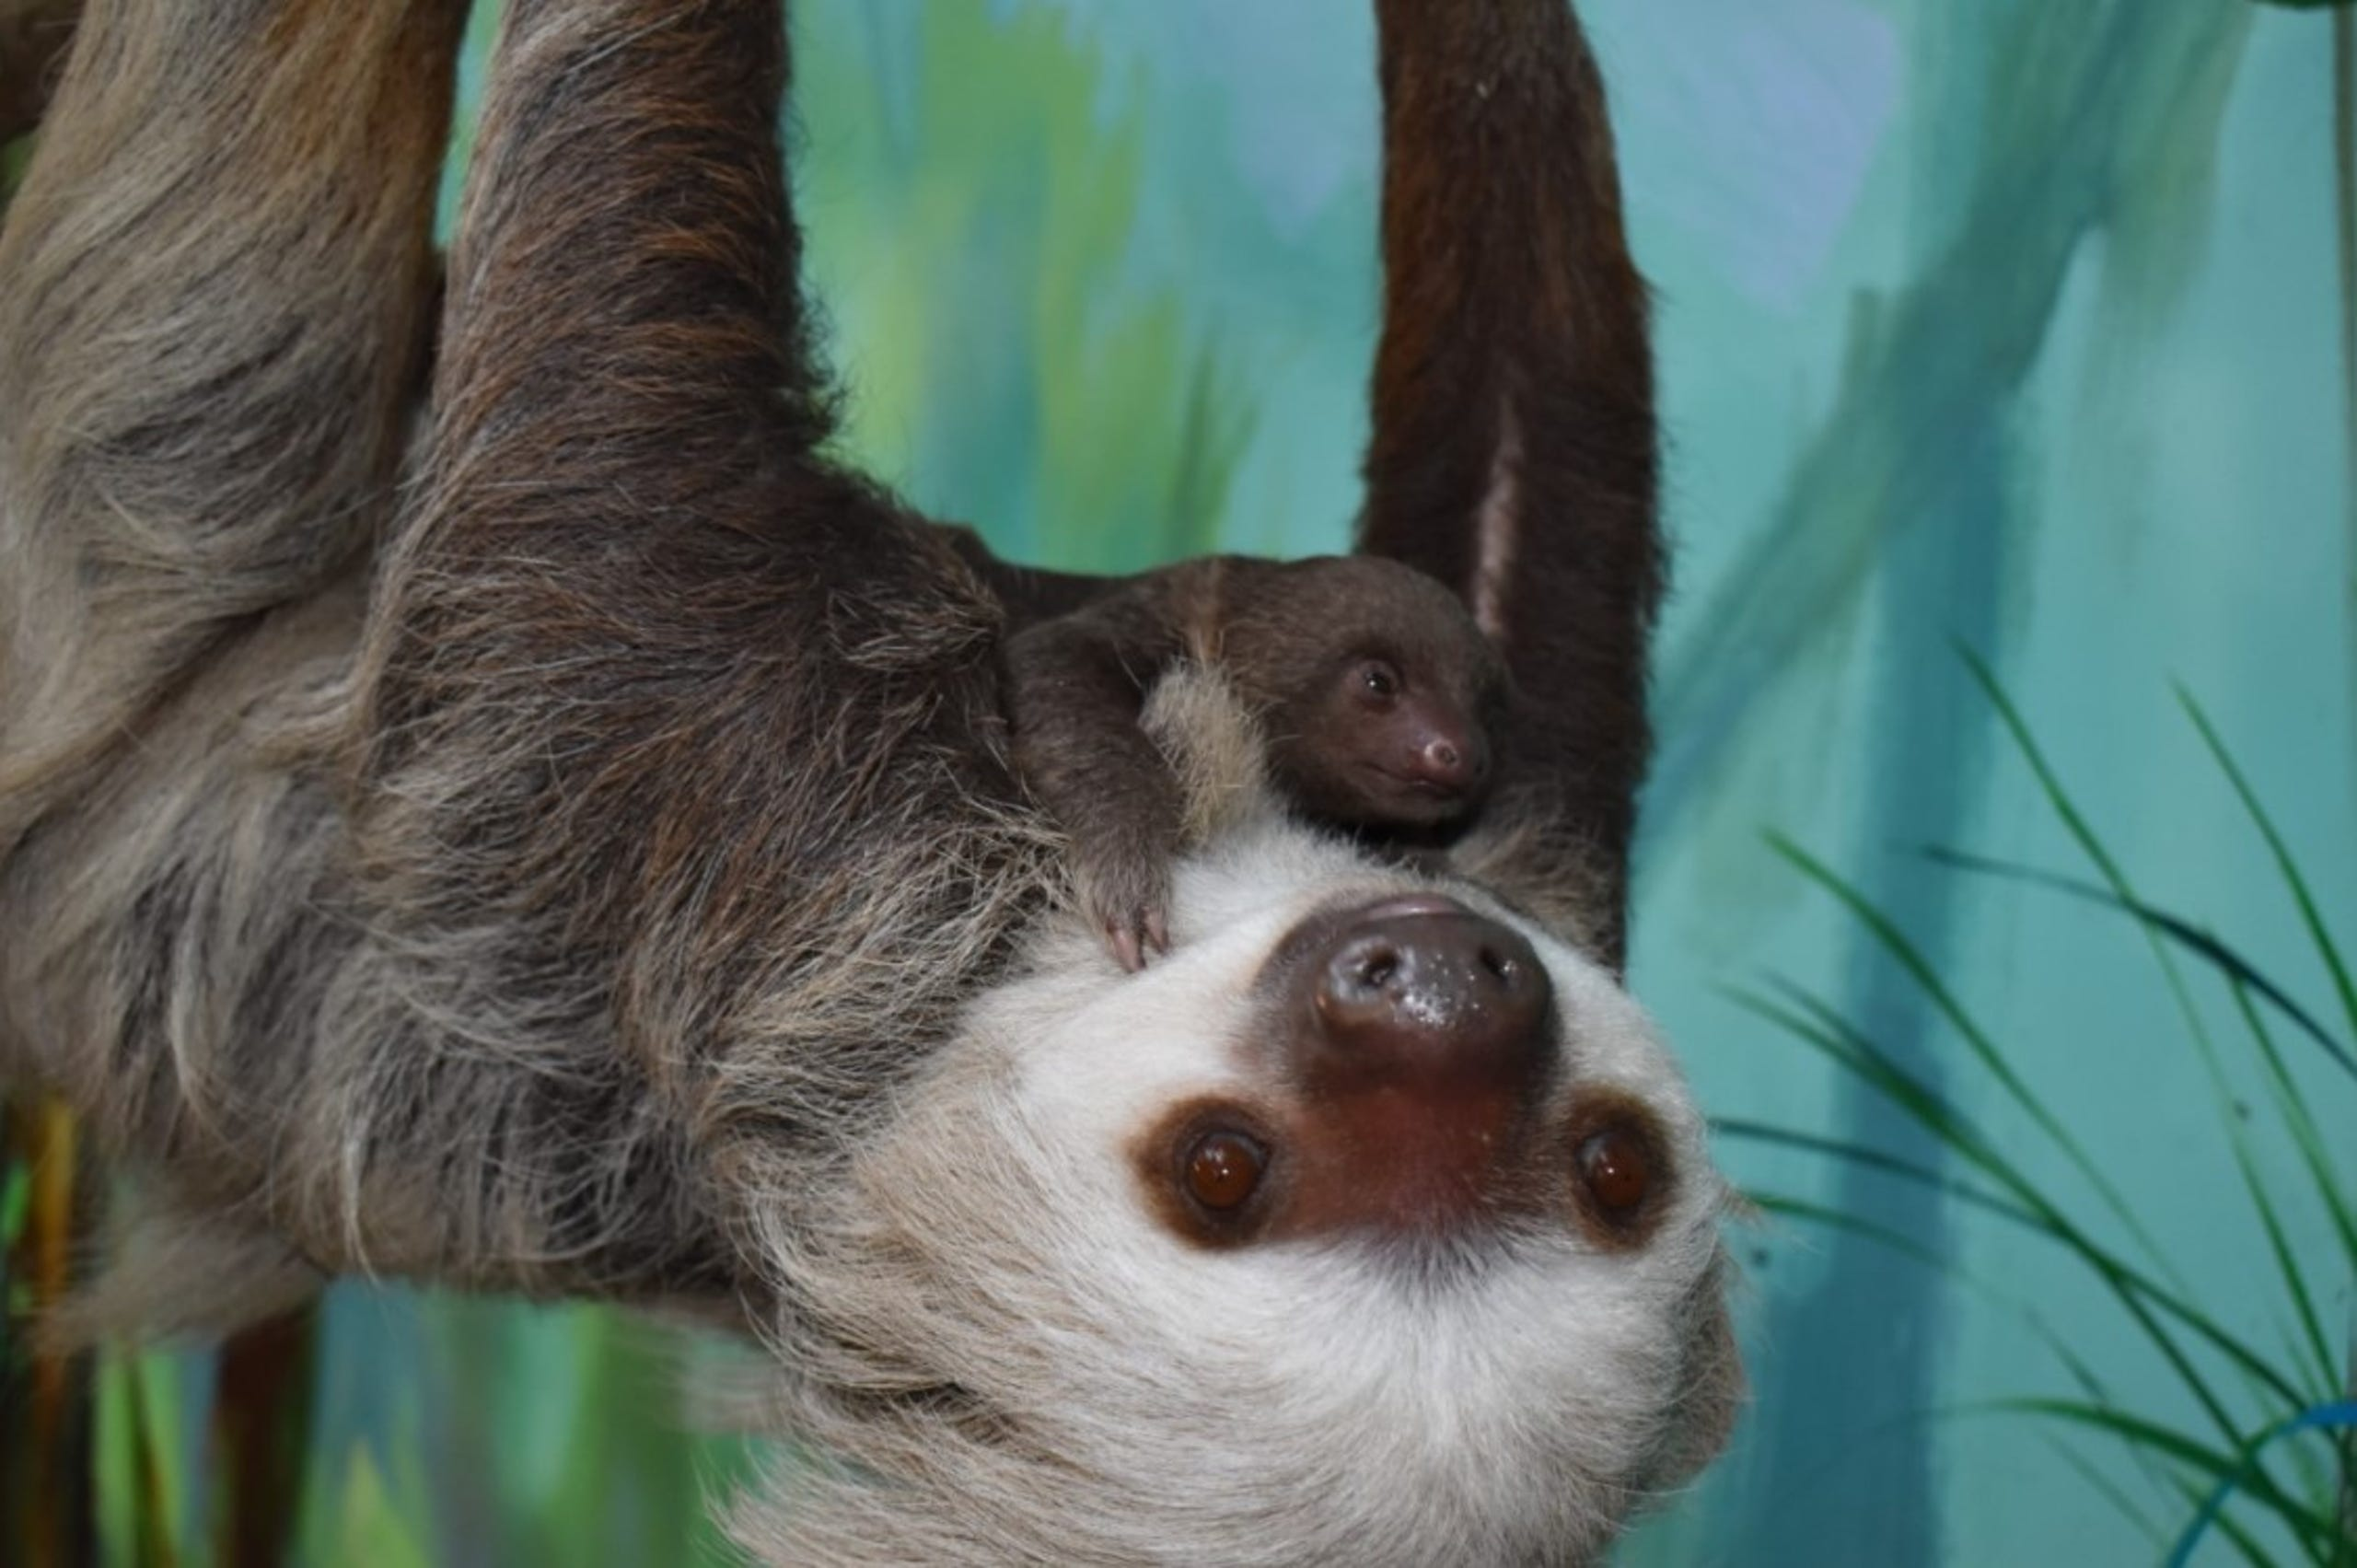 A baby two-toed sloth has been born at Buttonwood Park Zoo -- the first in the zoo's 127-year history.